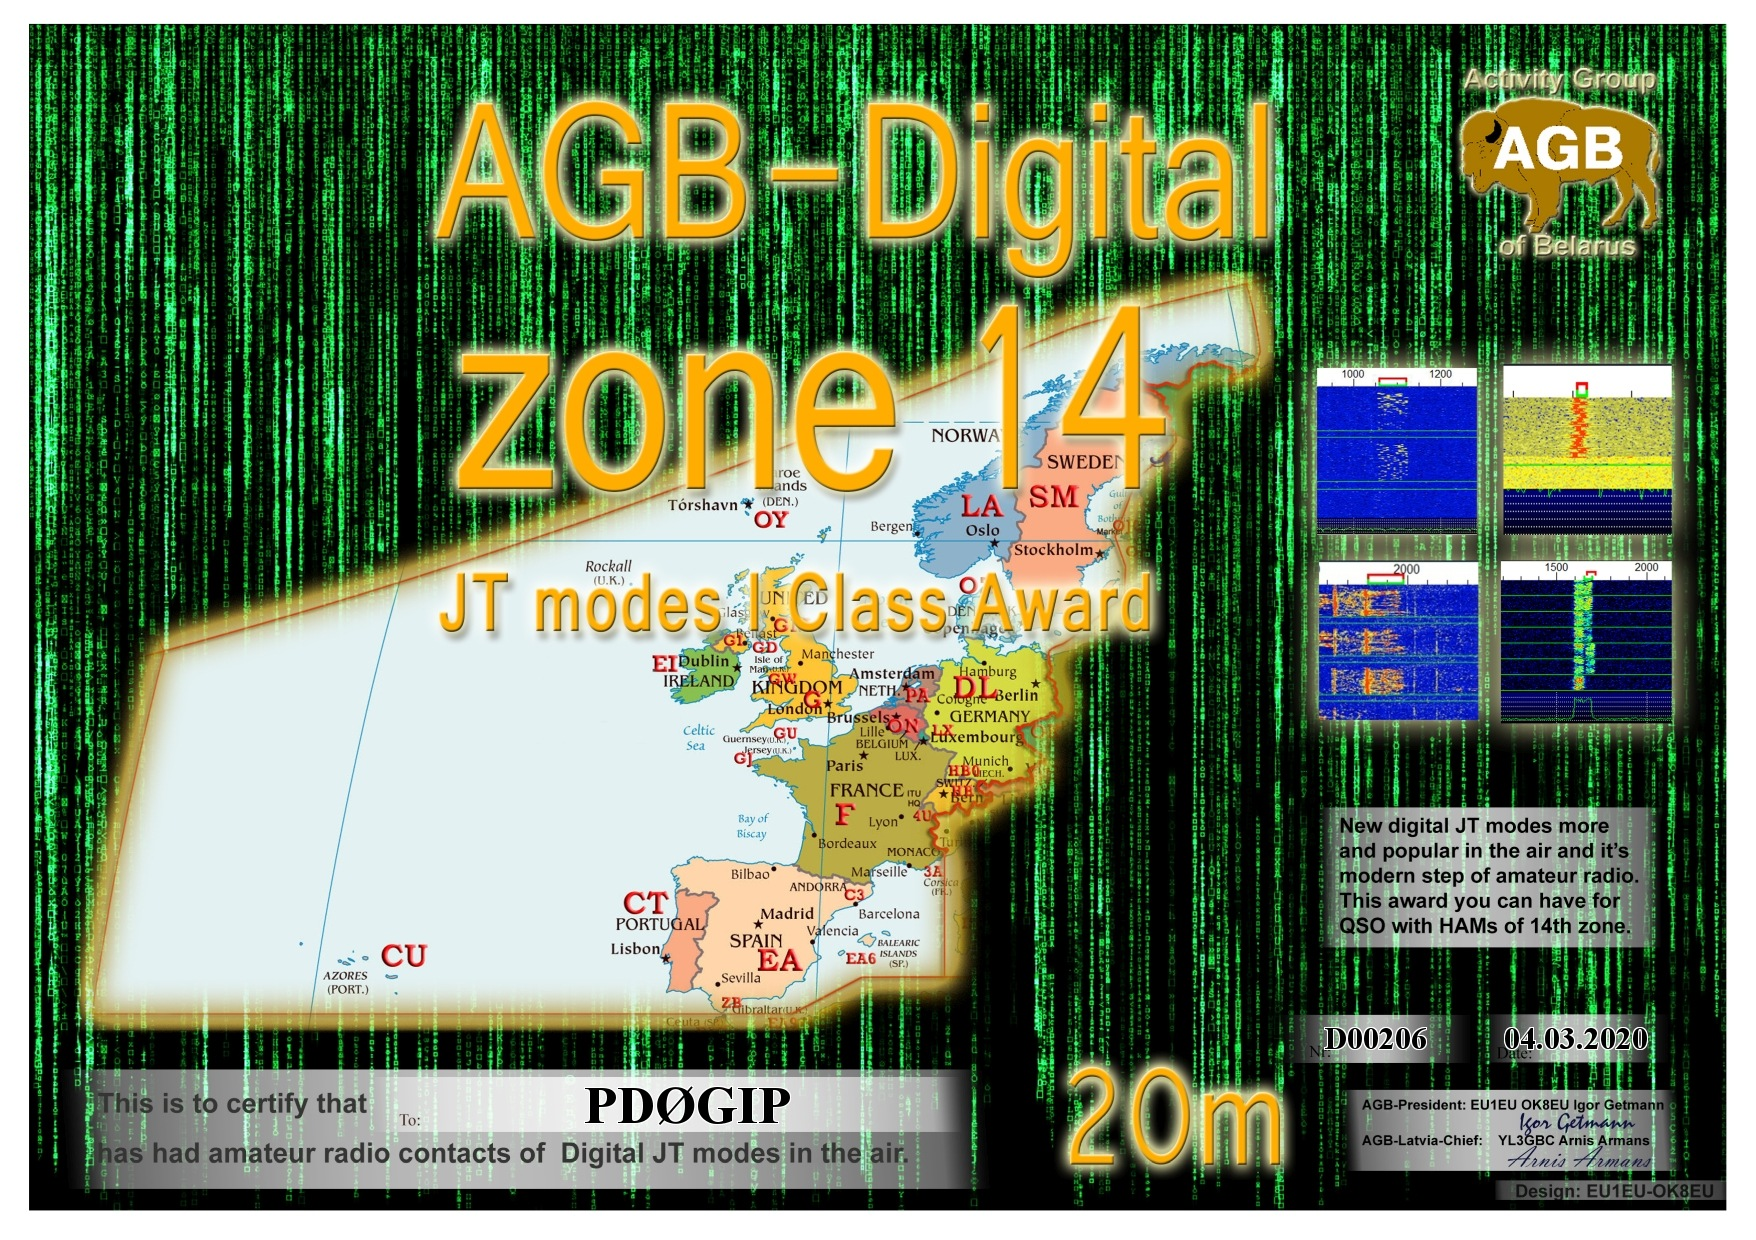 PD0GIP ZONE14 20M I AGB